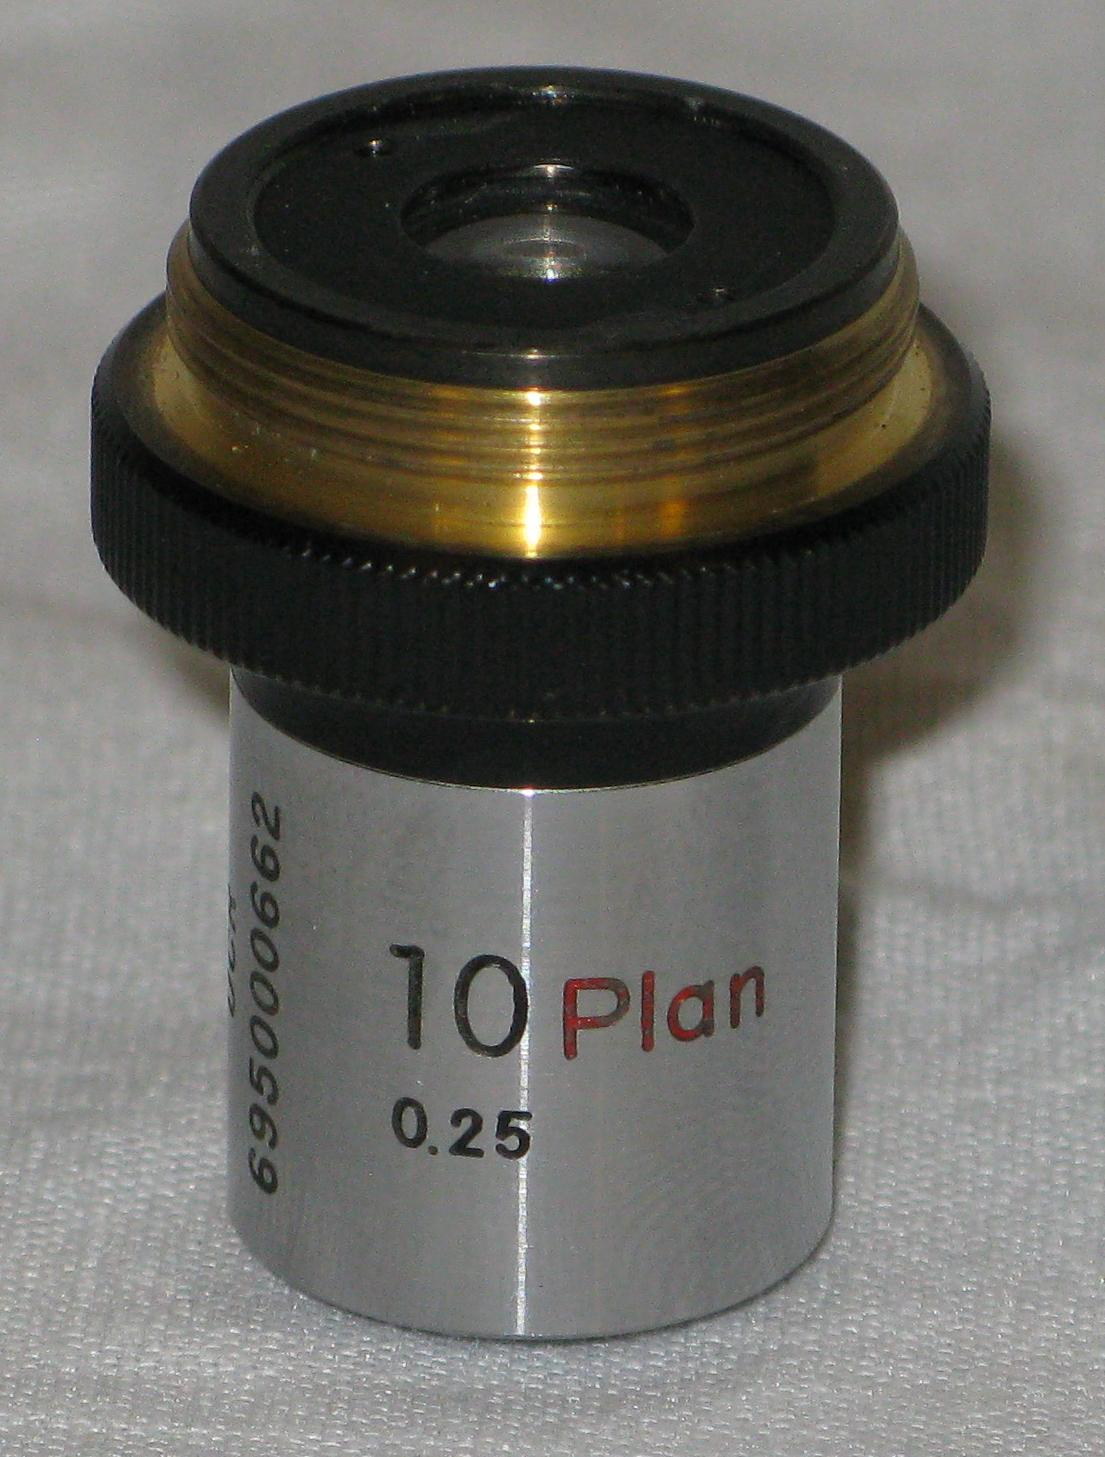 Magnification - Hand-Held Magnifying Lenses - Summit Learning